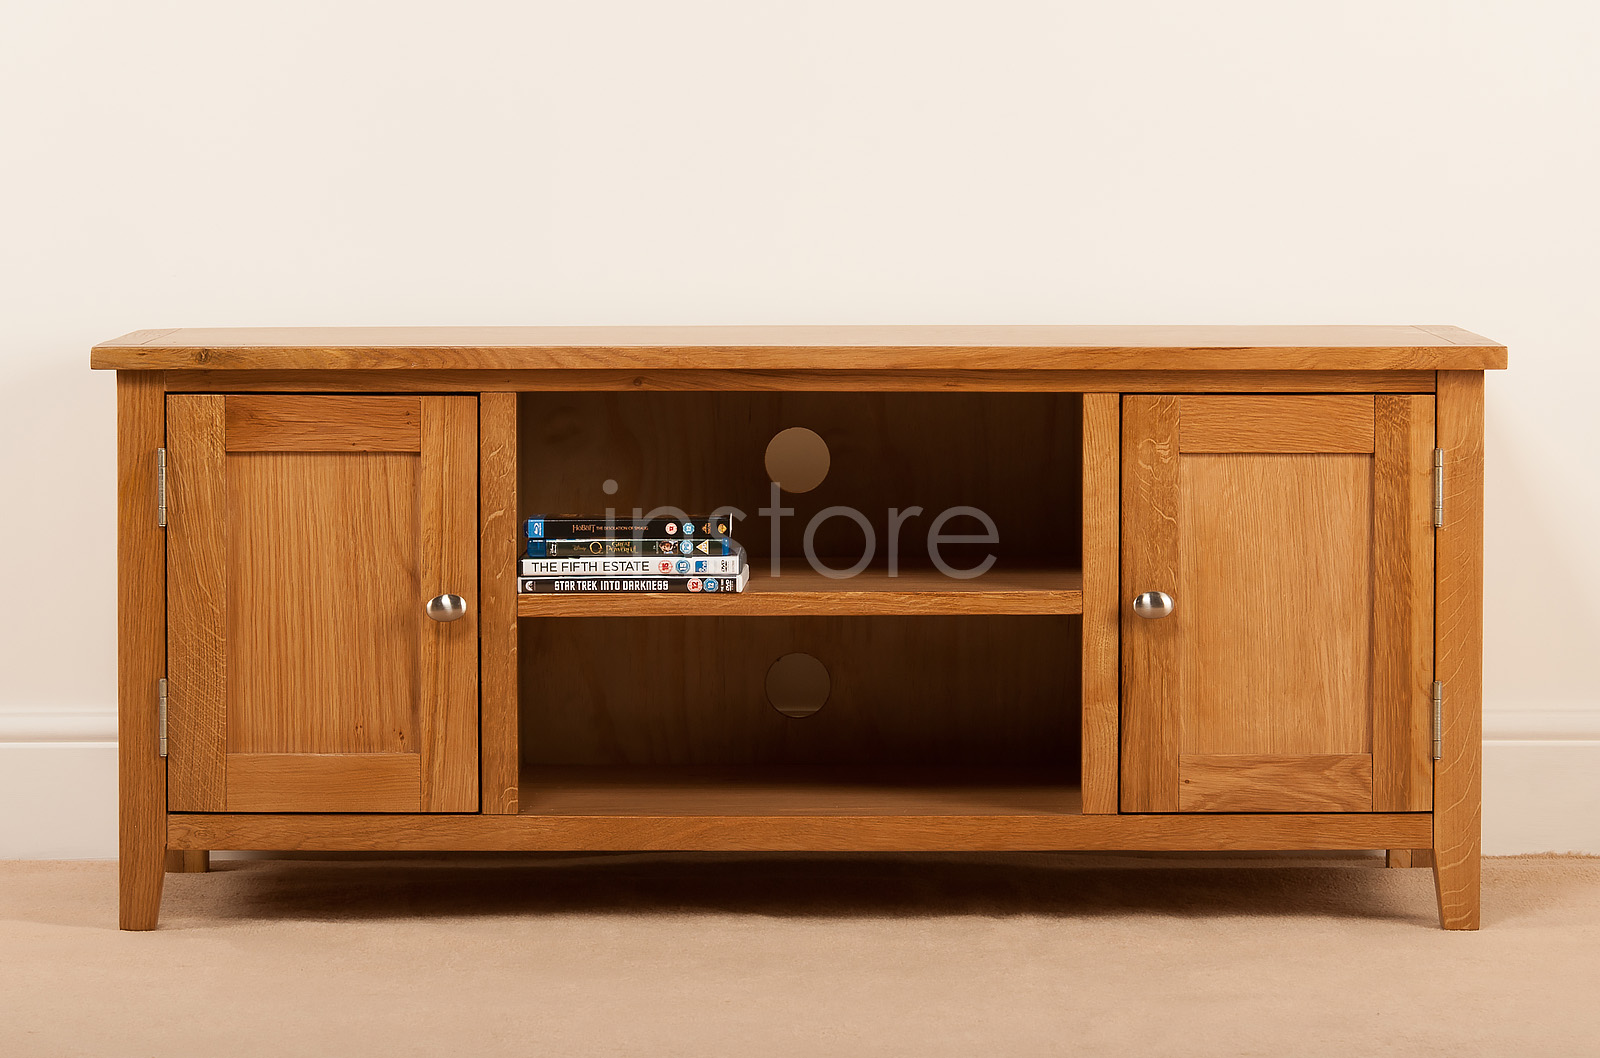 Rutland oak large tv stand